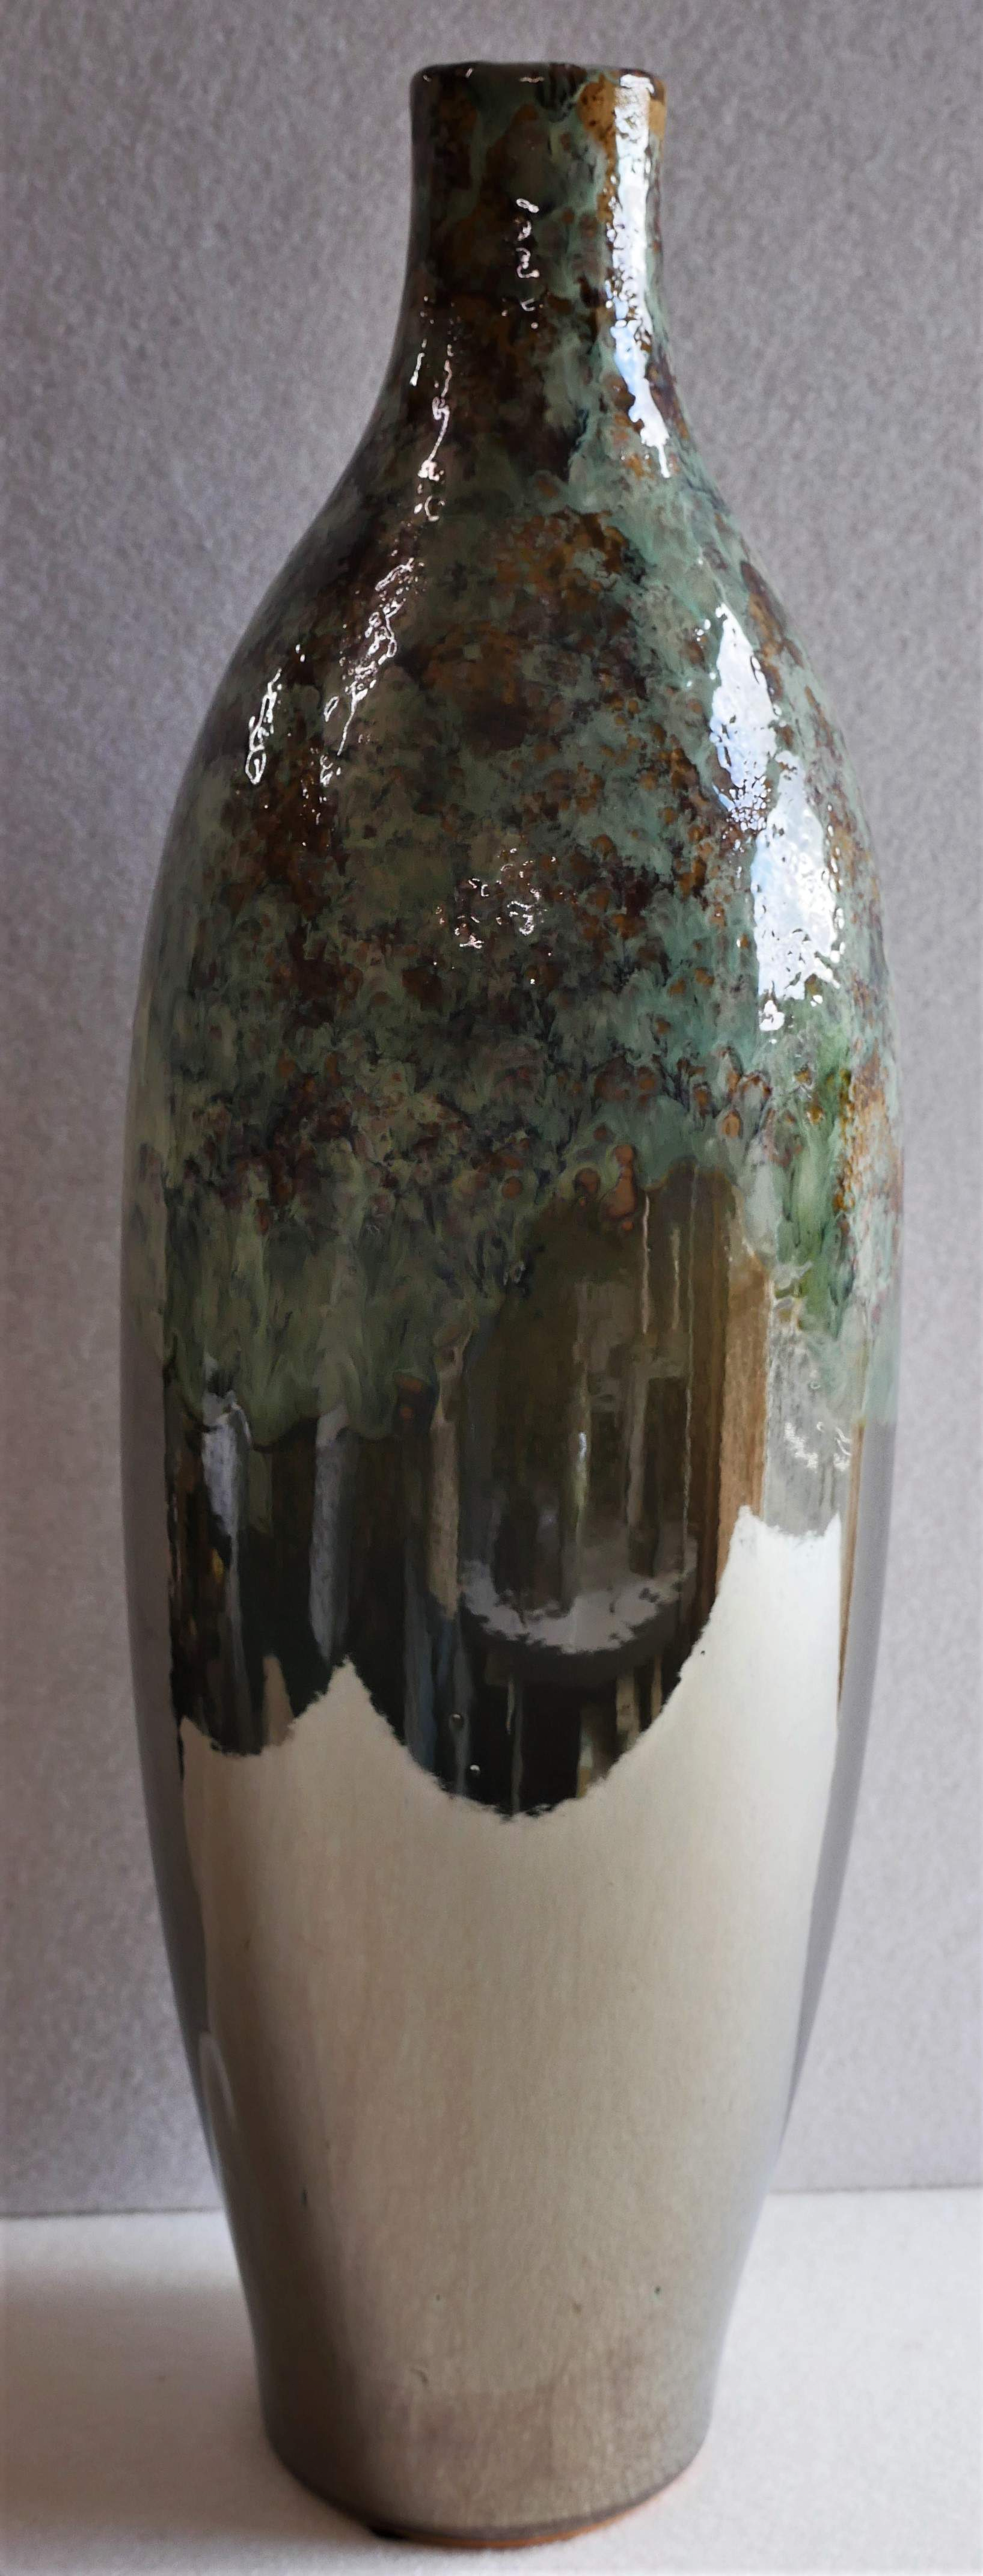 Tall green handmade vase